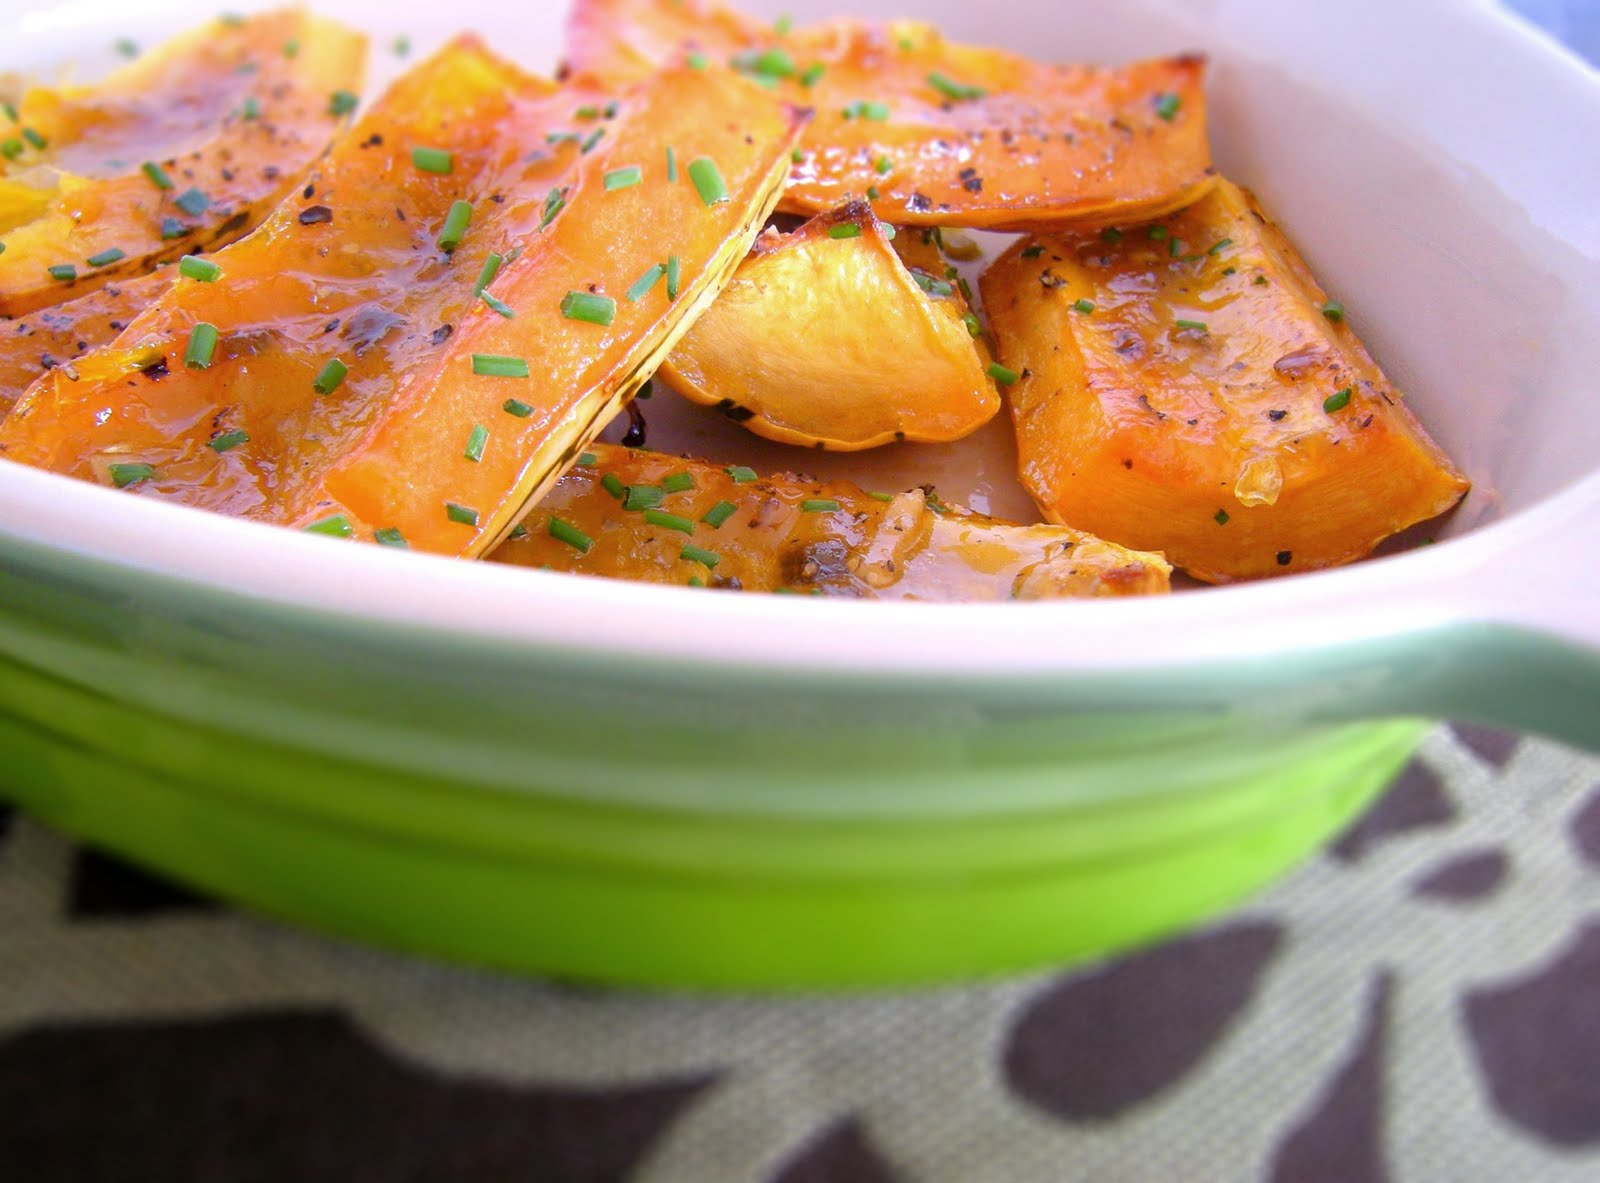 Crafty Lass: Roasted Squash with Pepper Jelly Glaze